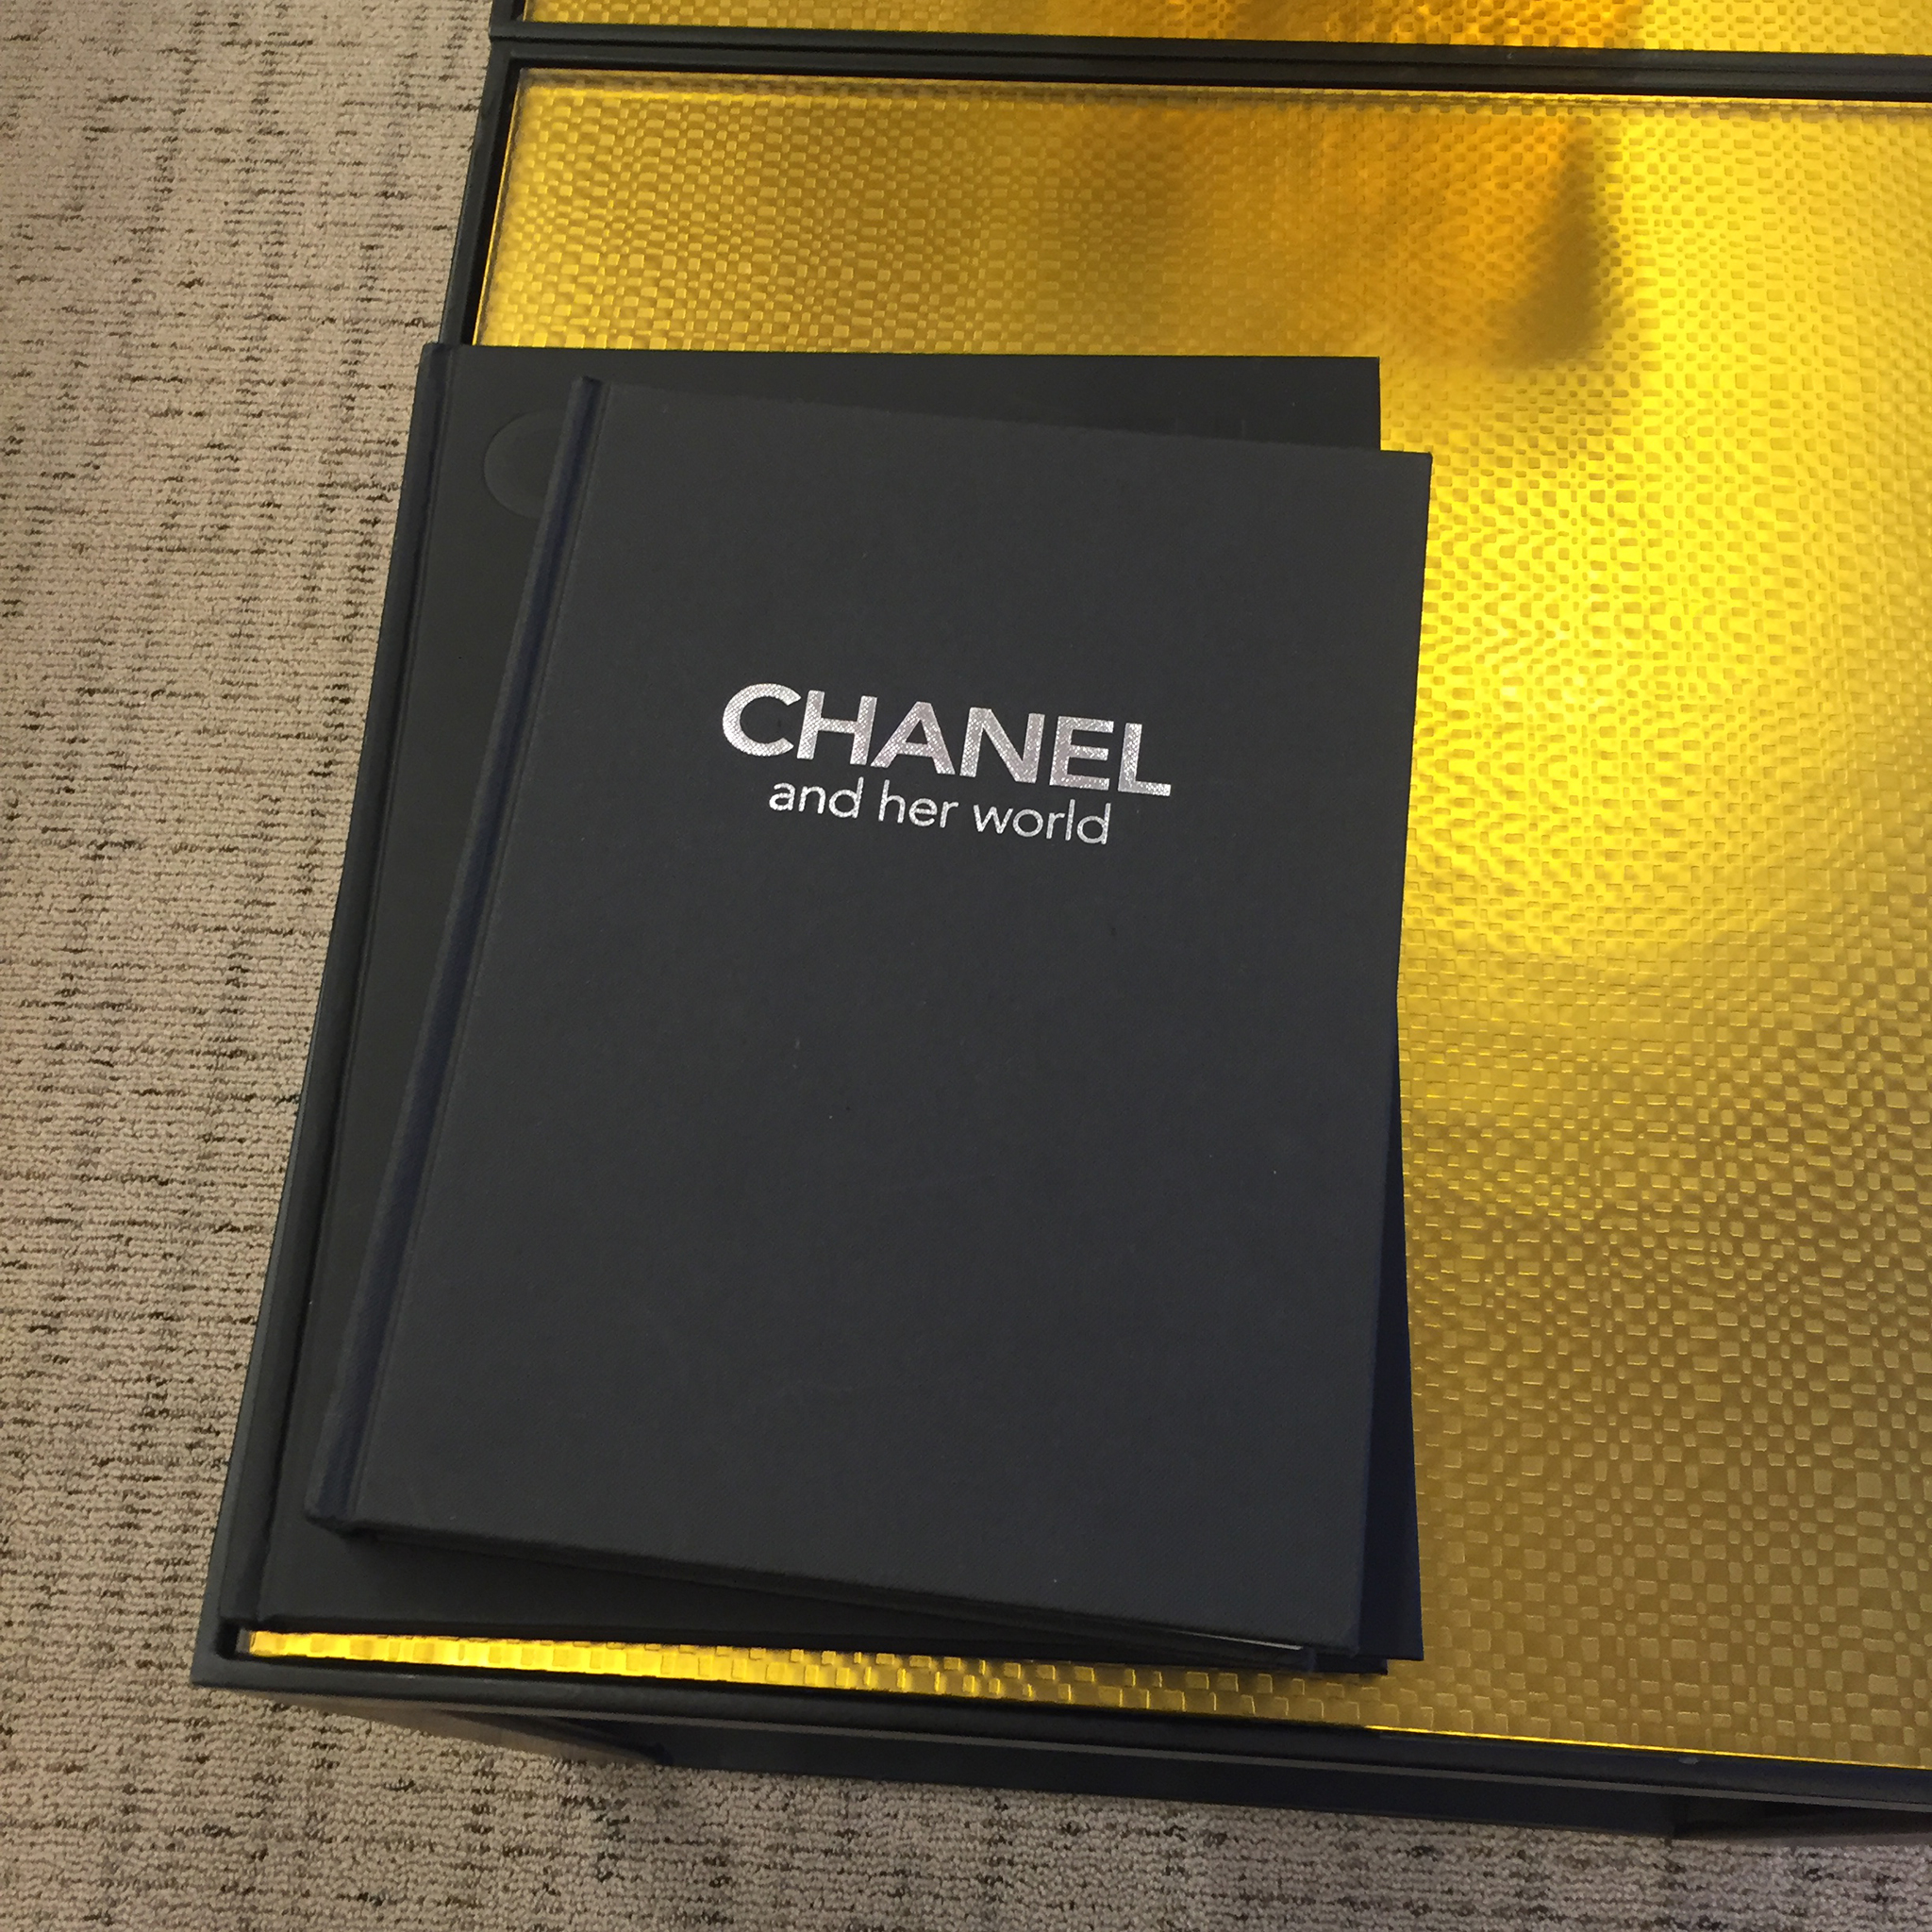 Chanel-Saks-5th-Ave-07